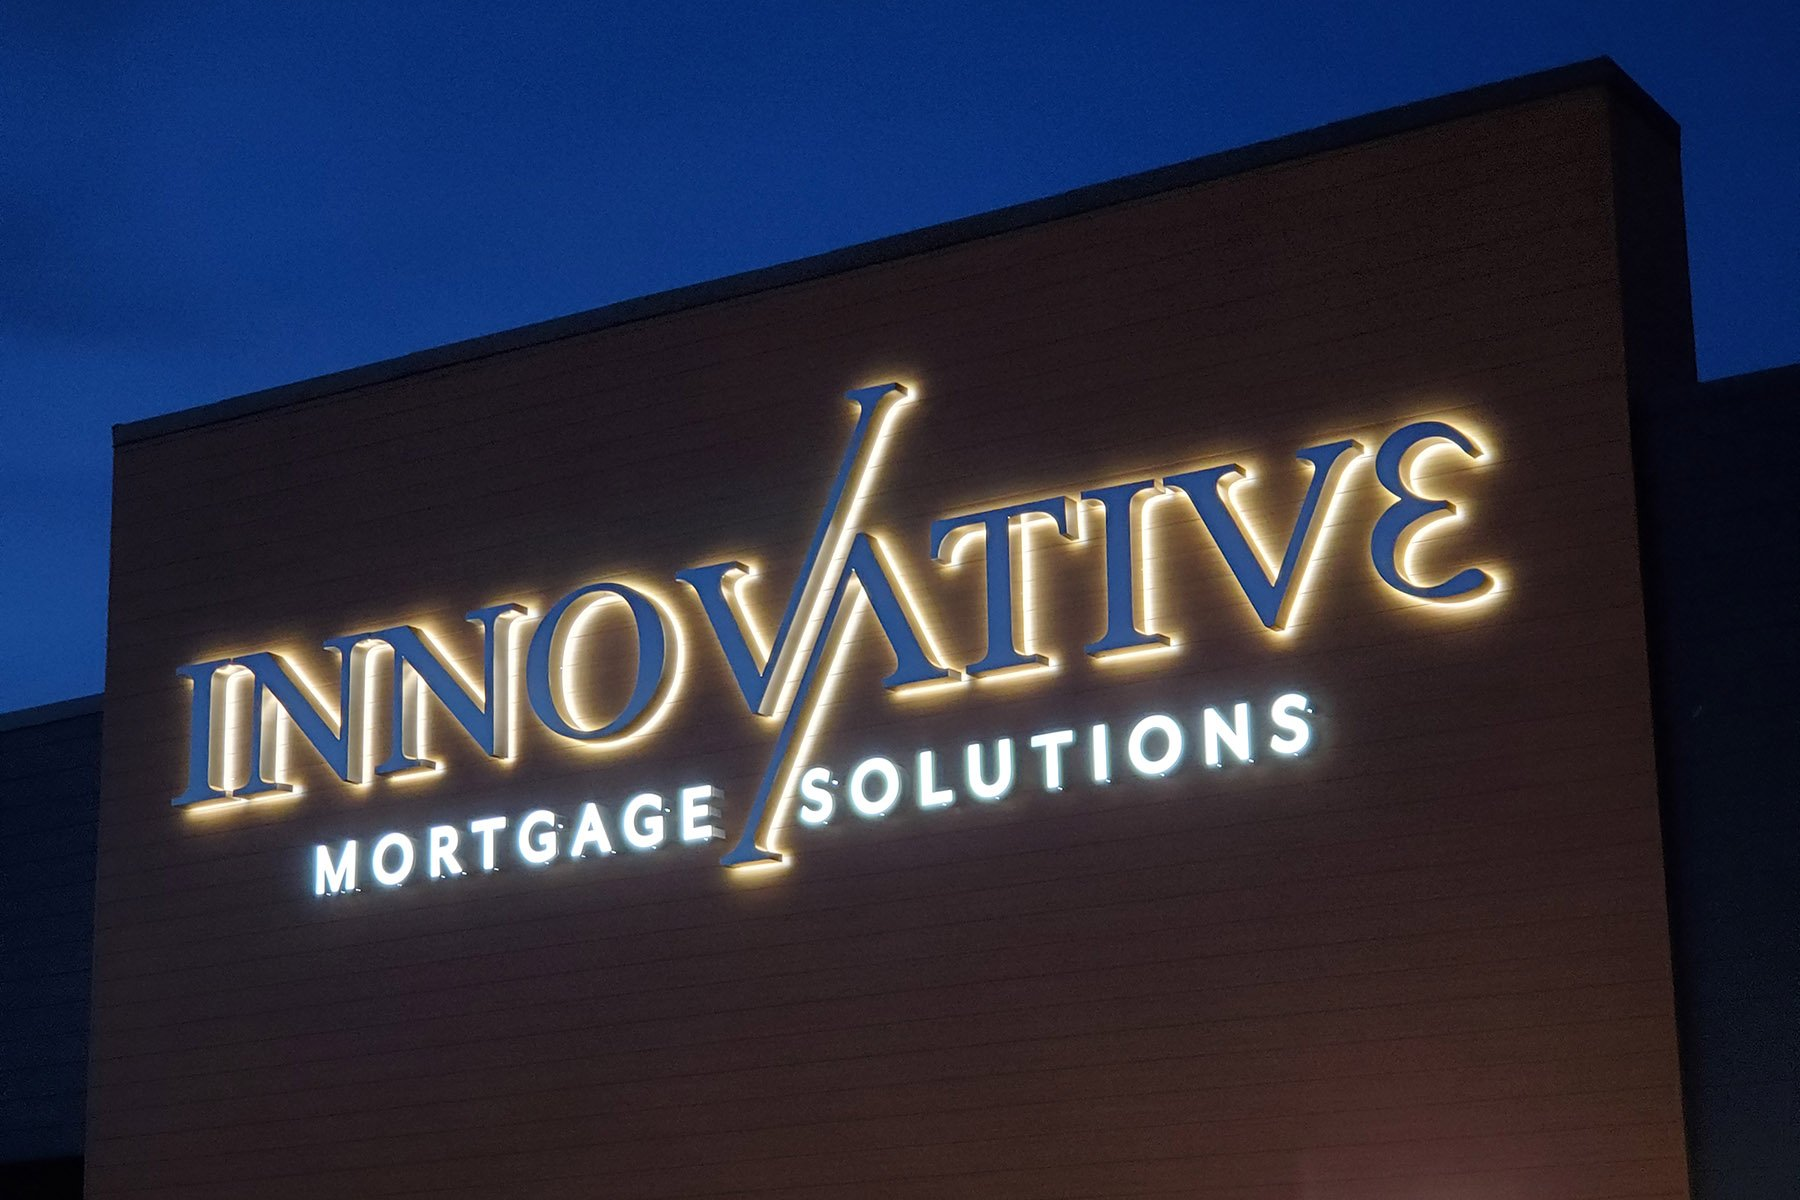 Halo-lit Channel letters for Innovative Mortgage Solutions